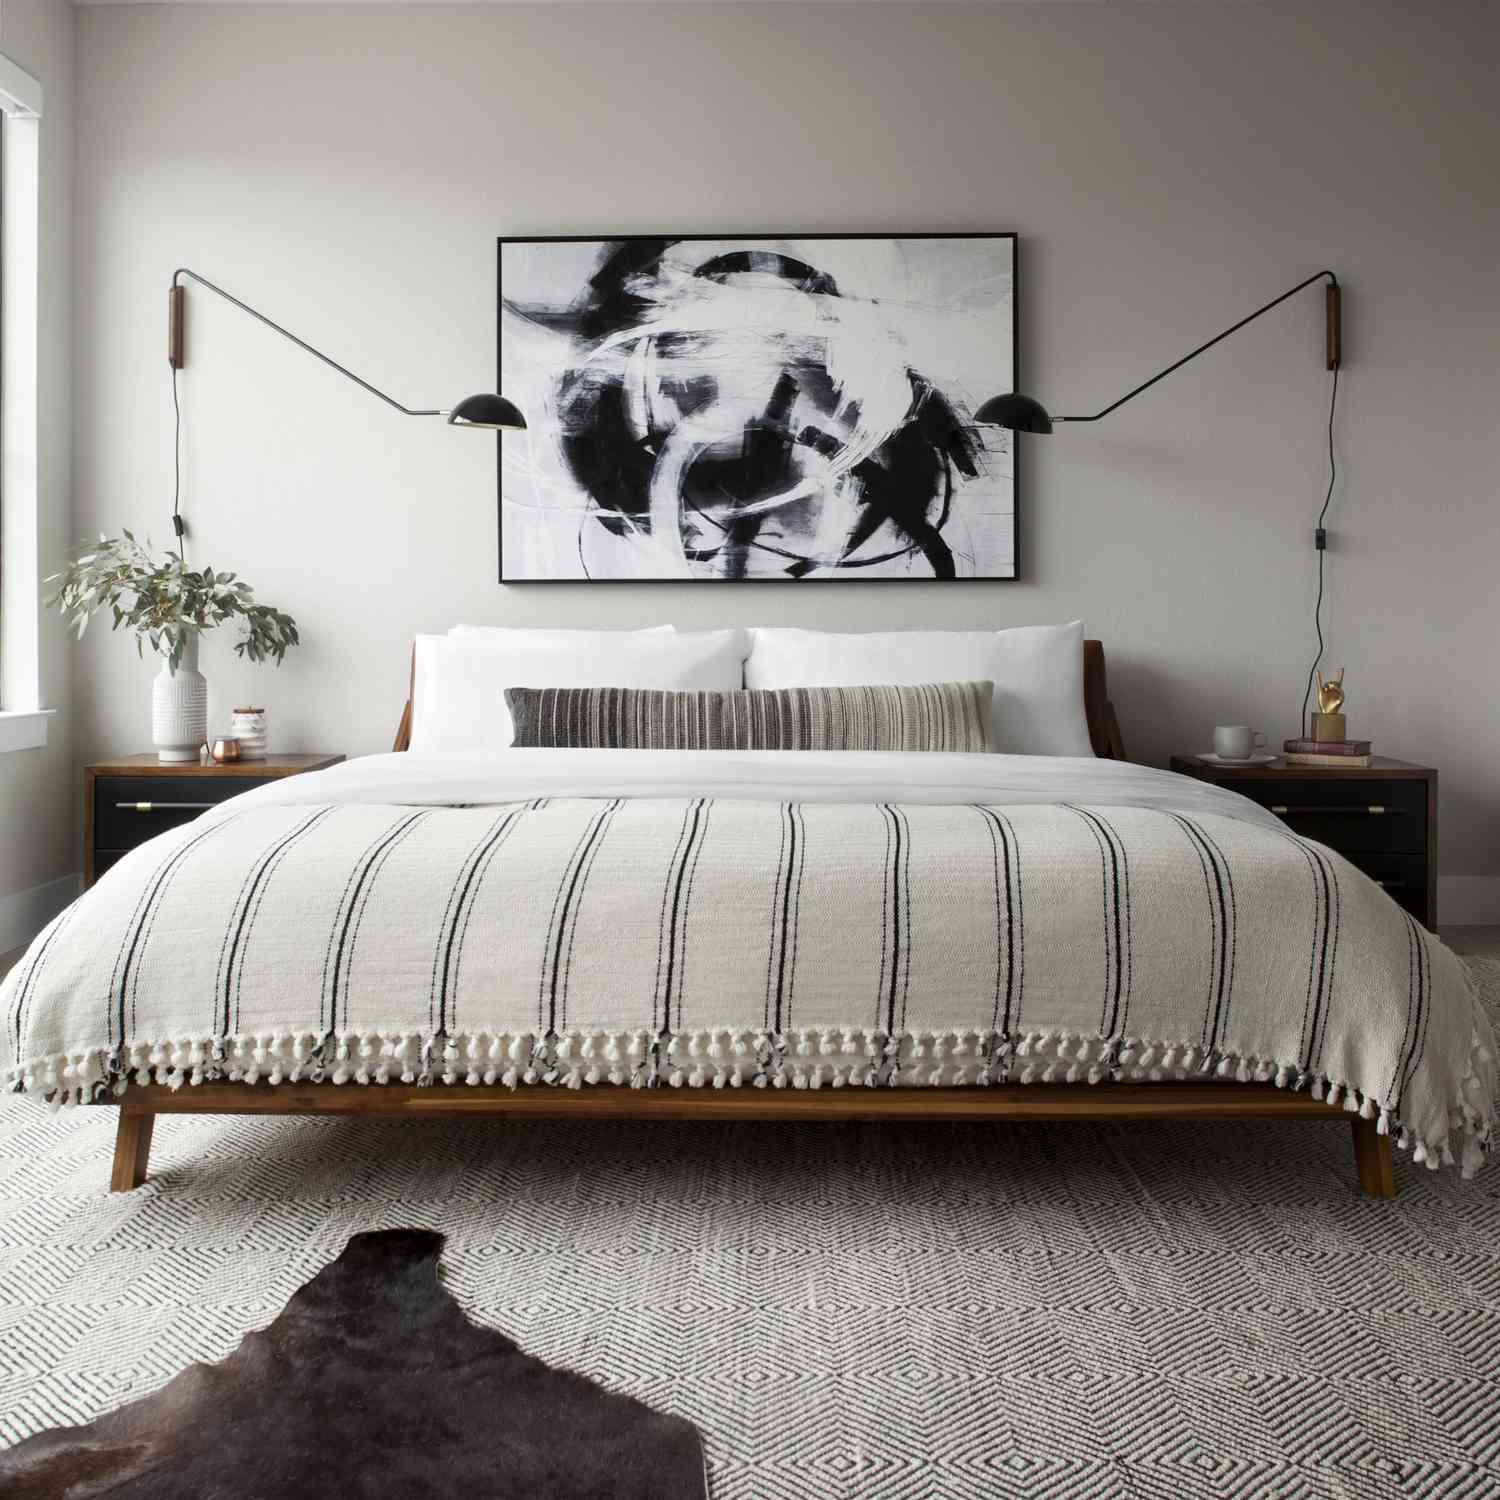 A modern bedroom with two massive modern swing-arm sconces